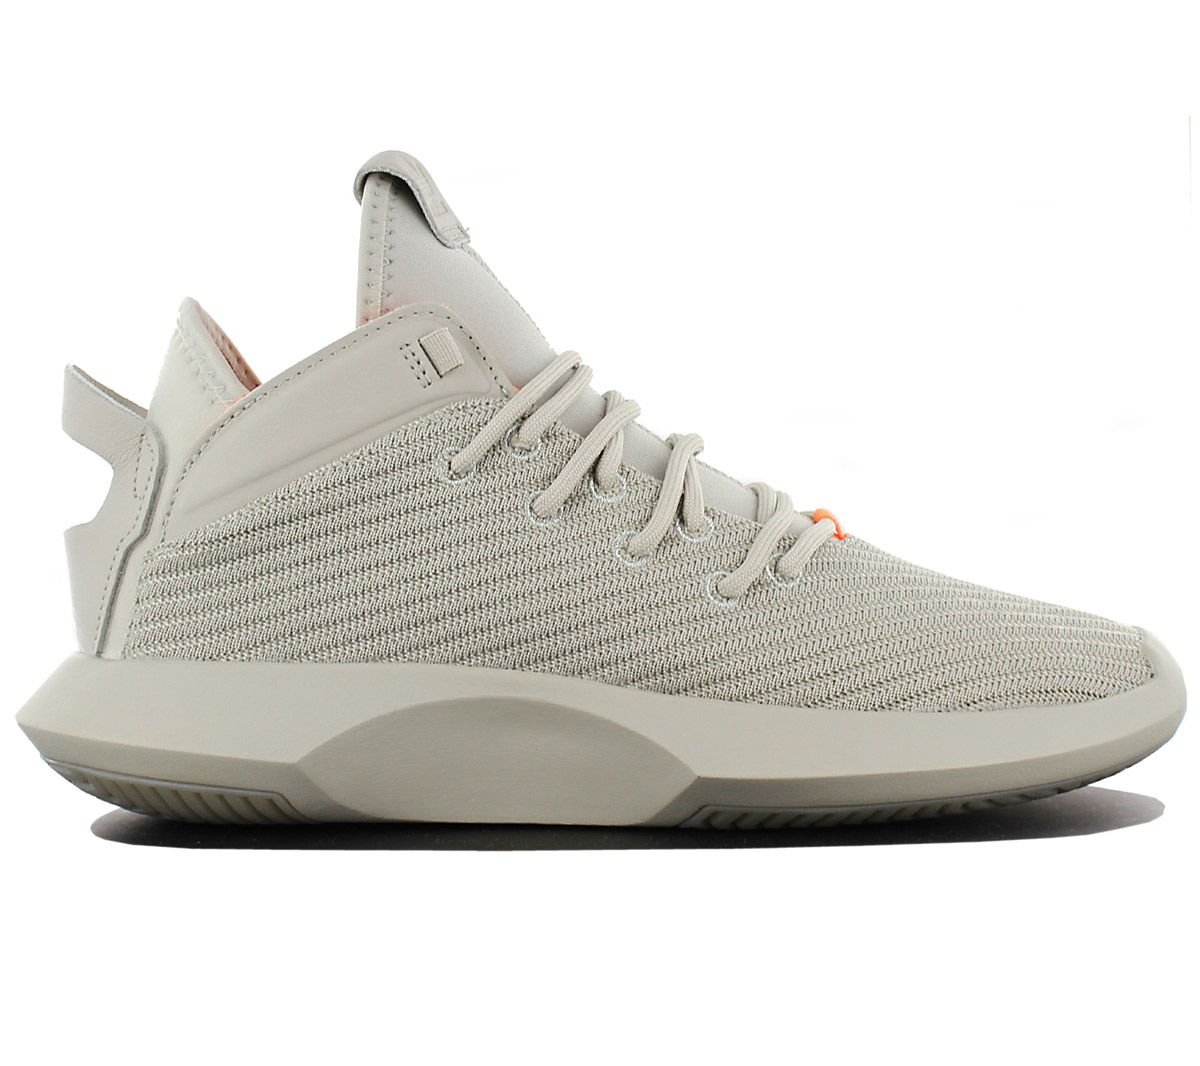 Details about Adidas Crazy 1 Adv Ck Men's Sneakers Basketball Shoes  Sneakers CQ0981 New